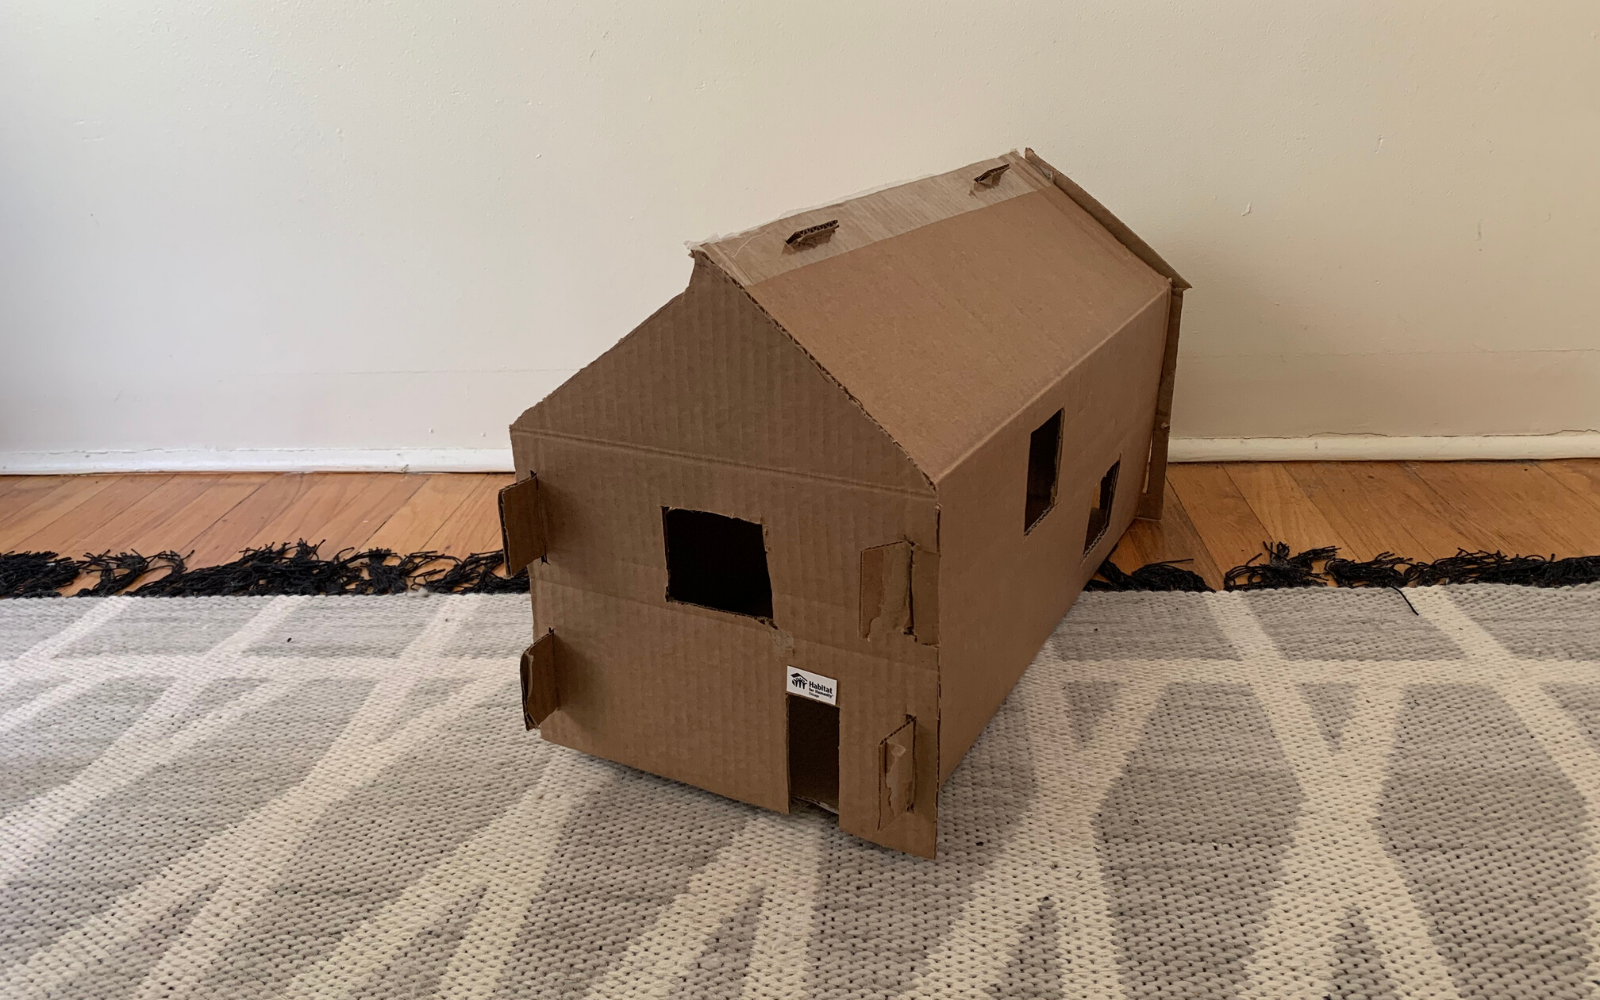 Habitat house made out of cardboard